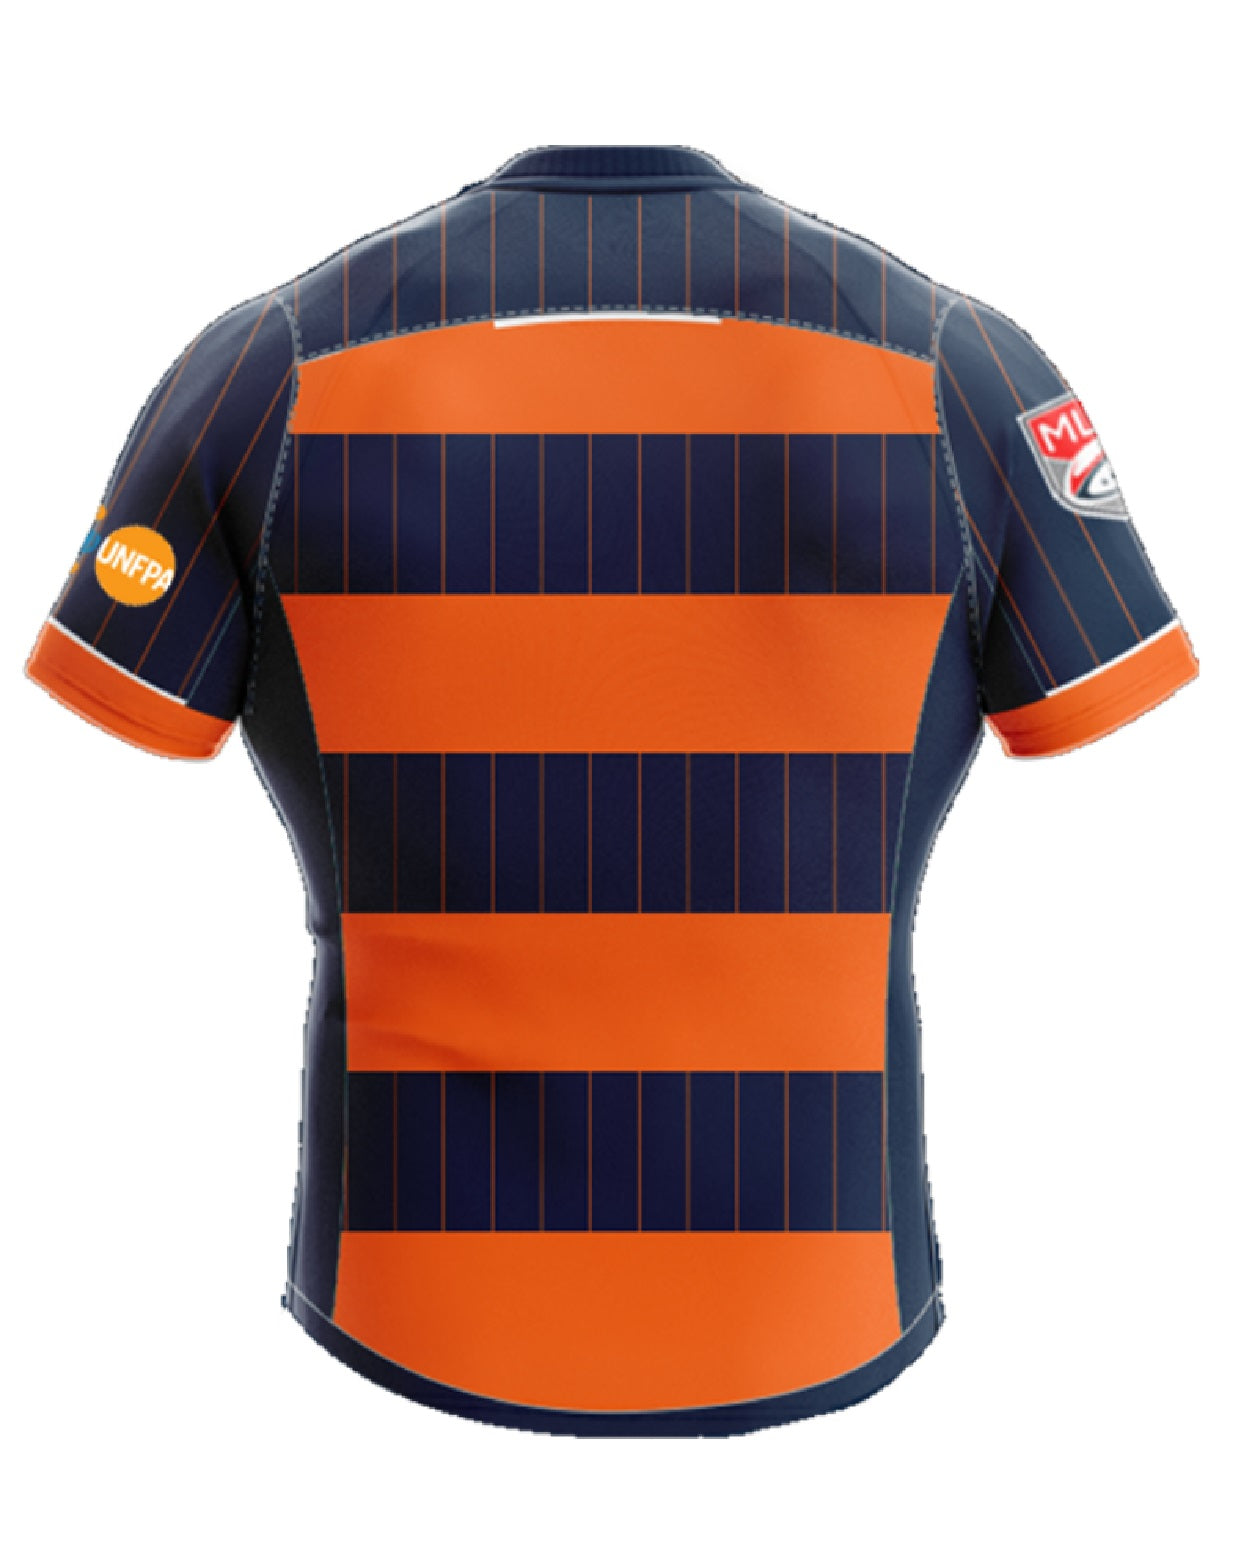 Rugby United New York Replica Jersey HOME